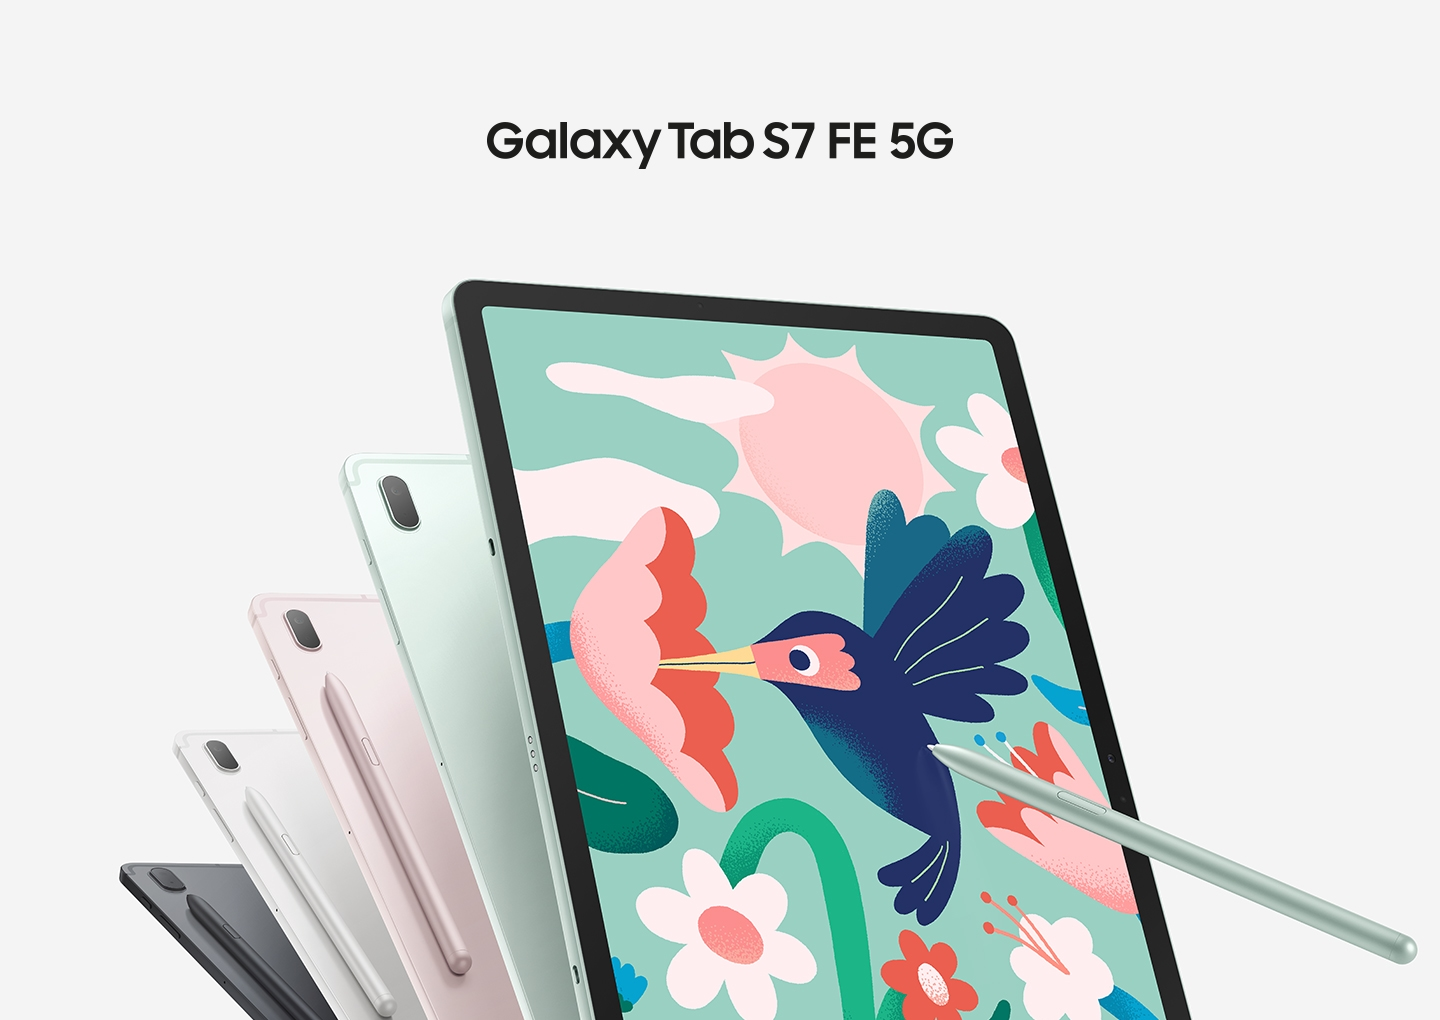 Five Galaxy Tab S7 FE 5G tablets, four seen from the rear and one seen from the front. The ones seen from the rear show the colors Mystic Black, Mystic Silver, Mystic Pink and Mystic Green, and the matching S Pen is magnetically attached on the back. The tablet seen from the front has the S Pen touching the screen as it draws a hummingbird sipping from a flower. Text says Galaxy Tab S7 FE 5G.